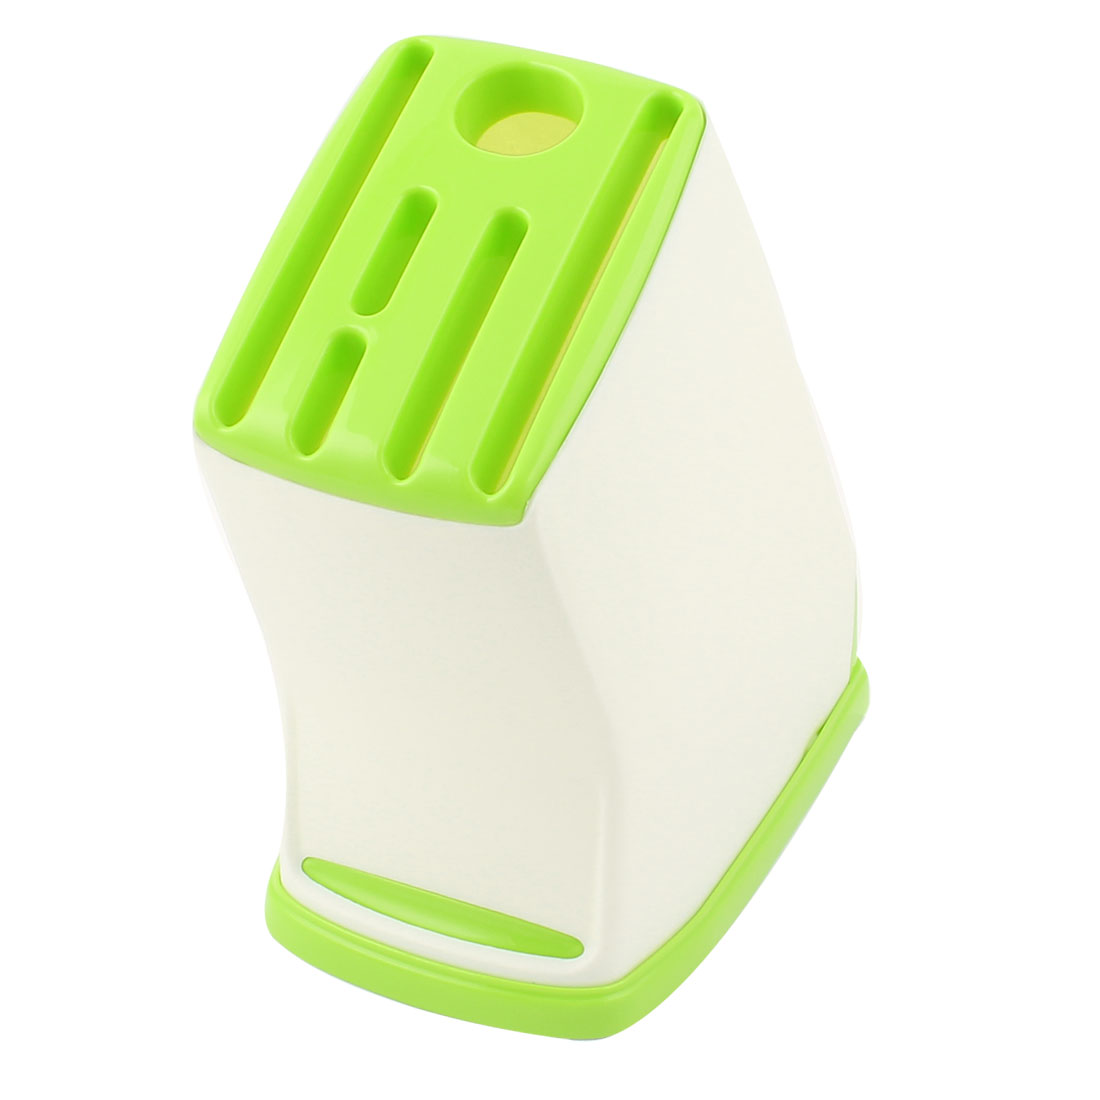 Kitchen Plastic Trapezoidal Shape 6 Slots Cook Chopper Cutter Holder Green White